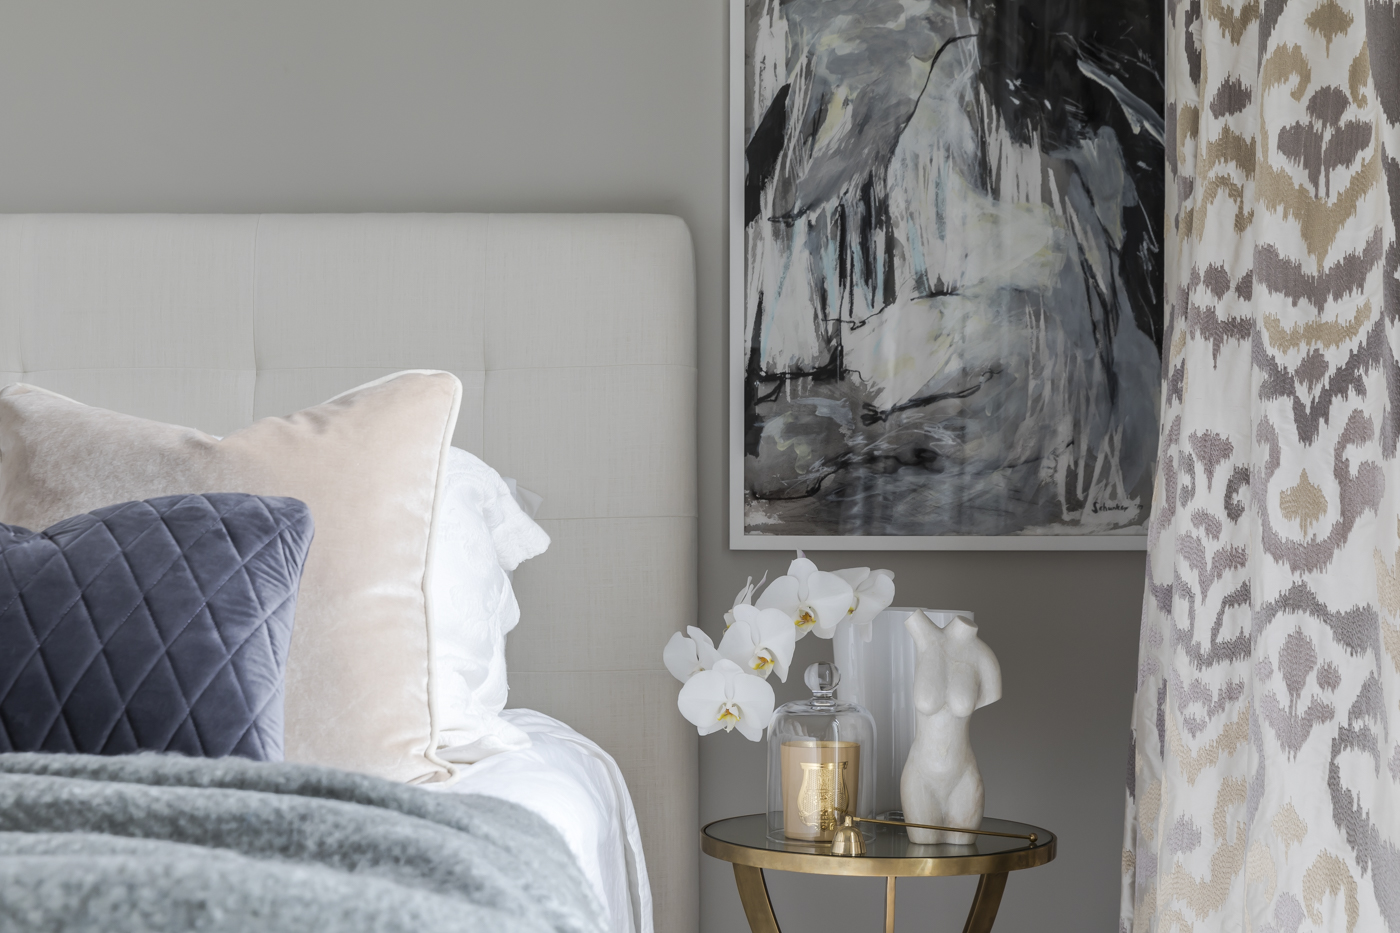 At Jersey Road, the metallic side table and accessories add a warm glow to the master bedroom.